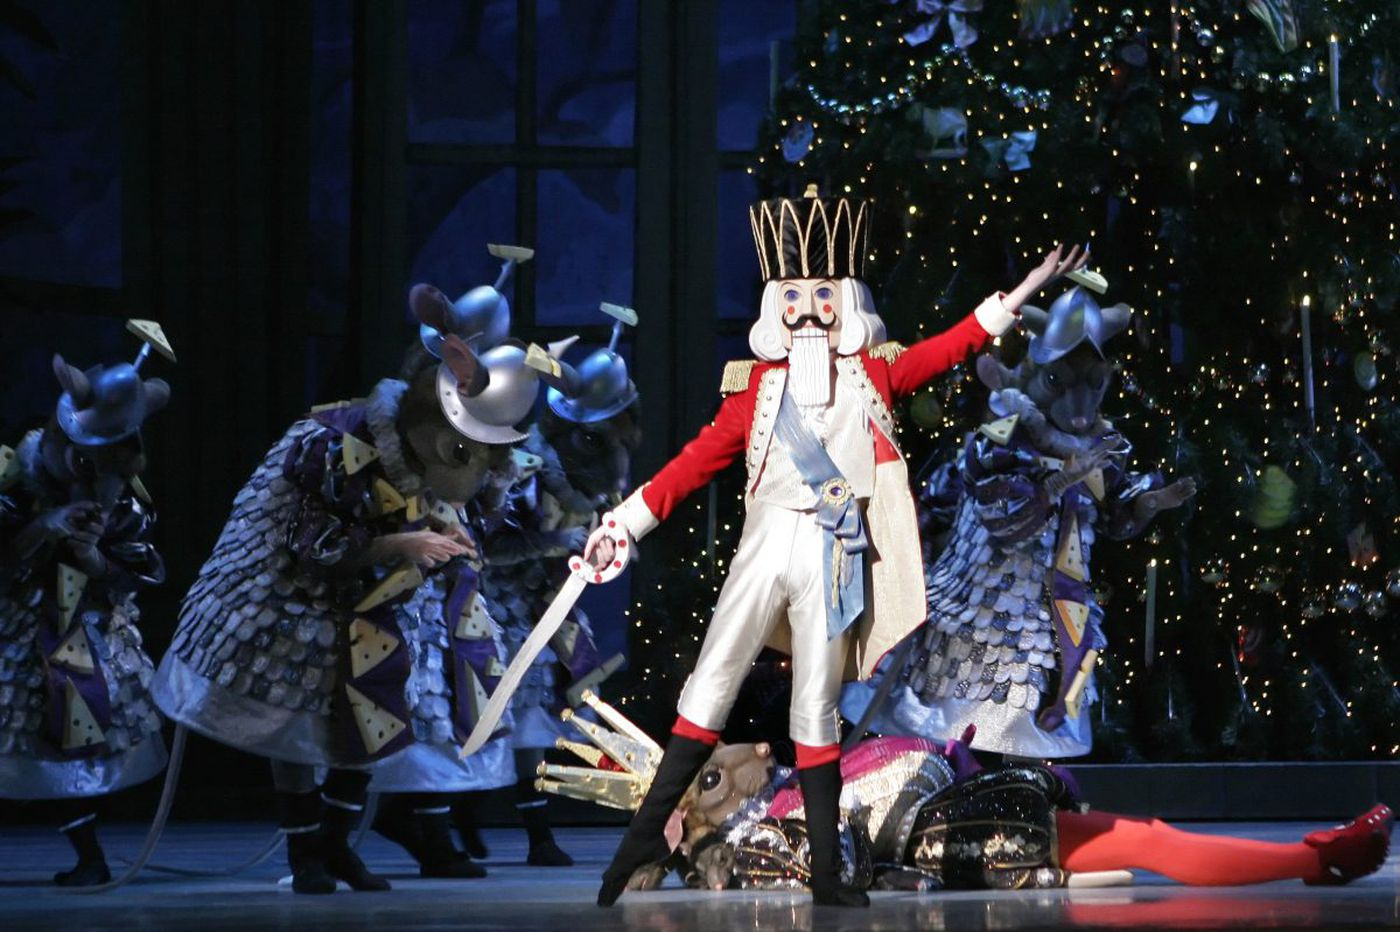 Seen 'The Nutcracker'? You may have colluded with the Russians